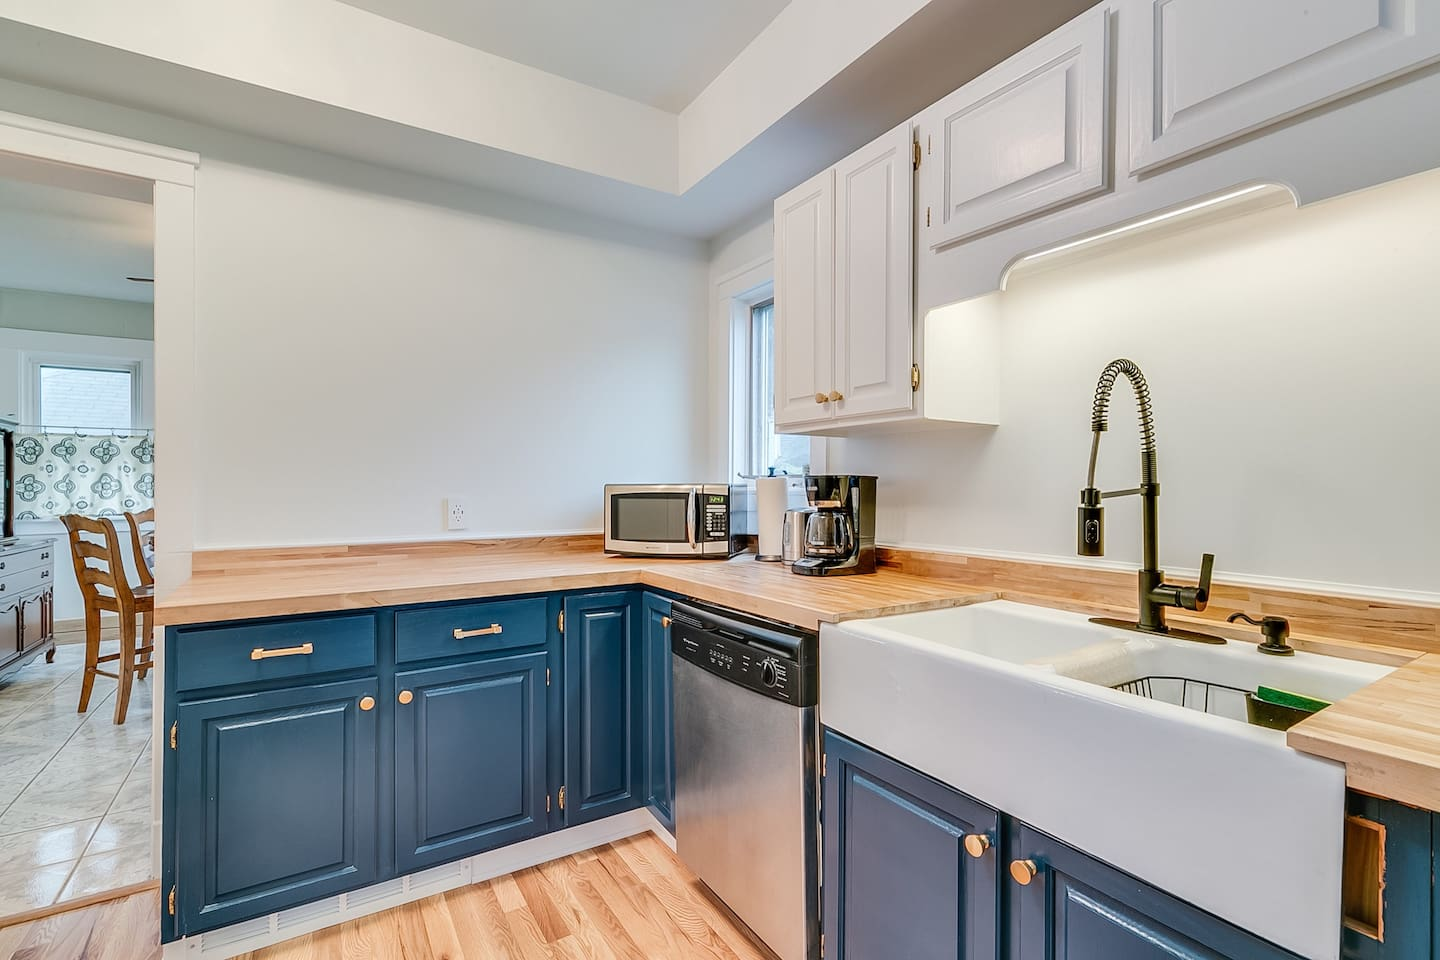 Fully stocked kitchen, all you need for cooking and dining.